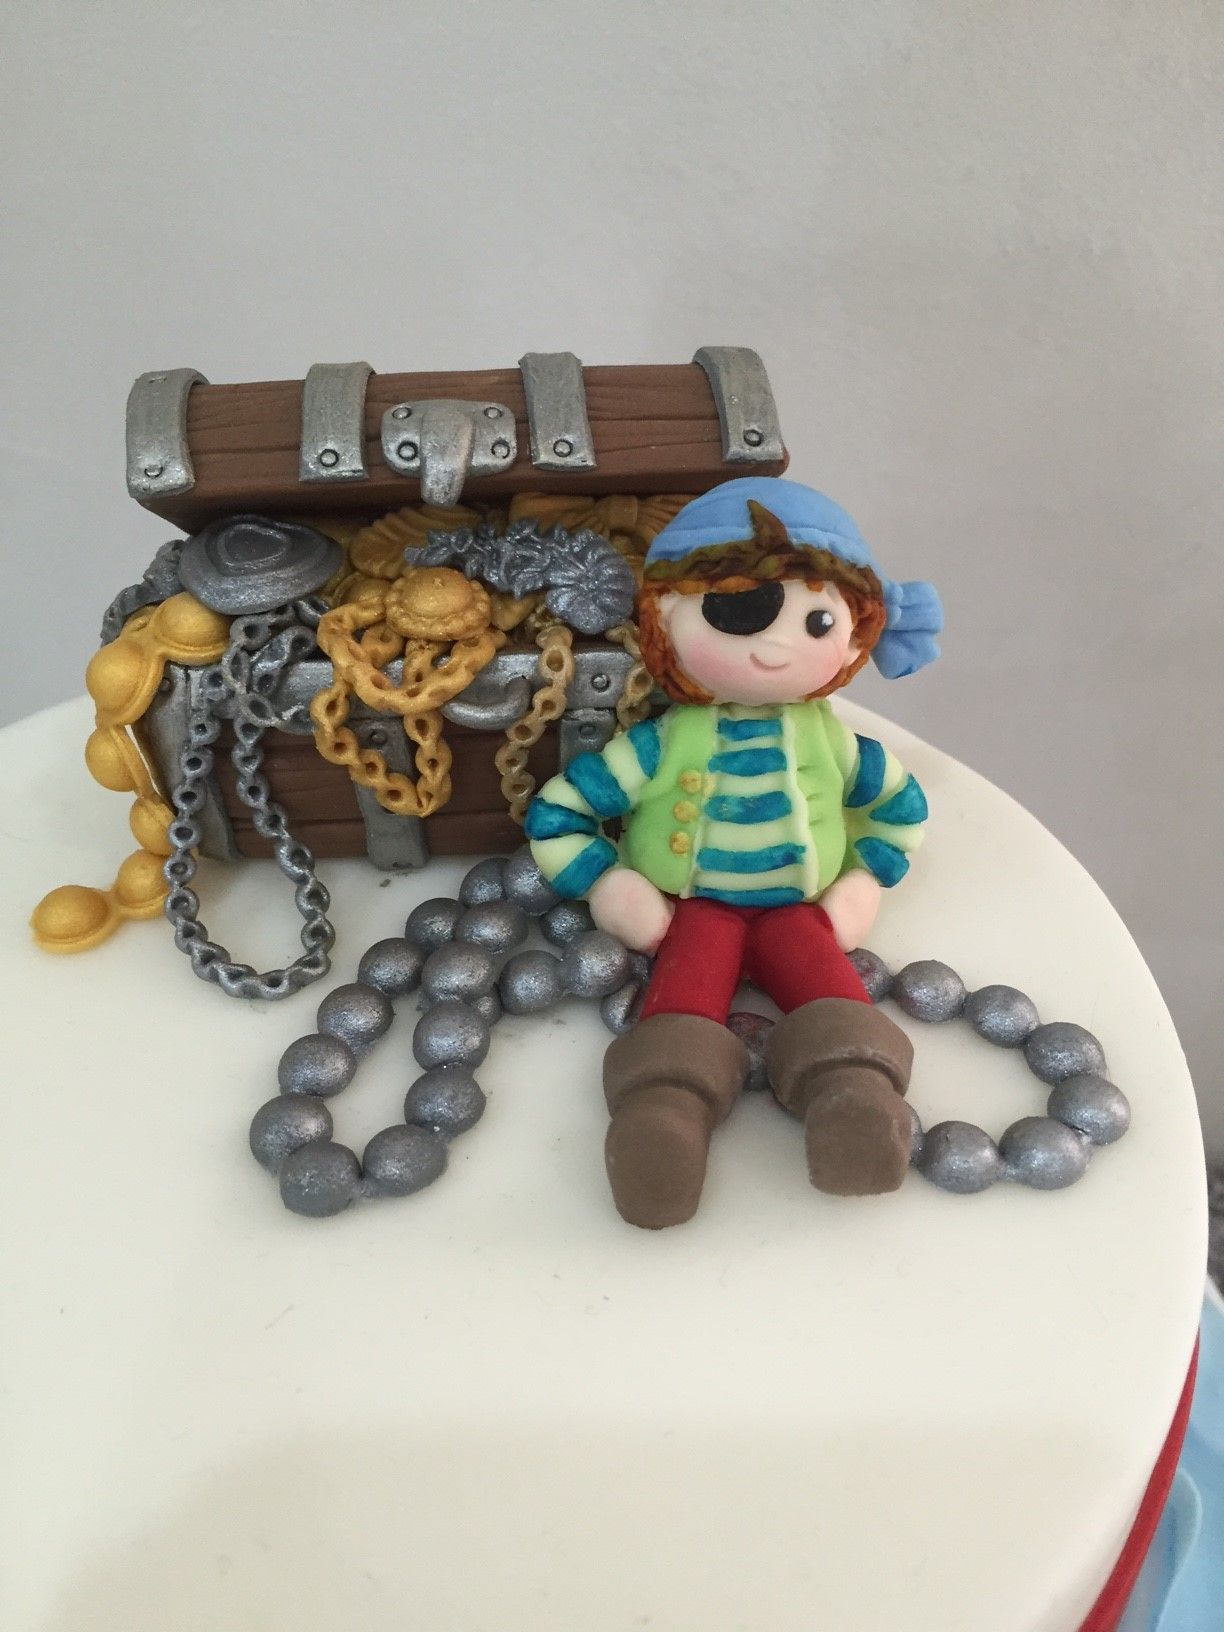 Finding The Hidden Treasure Pirate Cake Topper For Boys Birthday